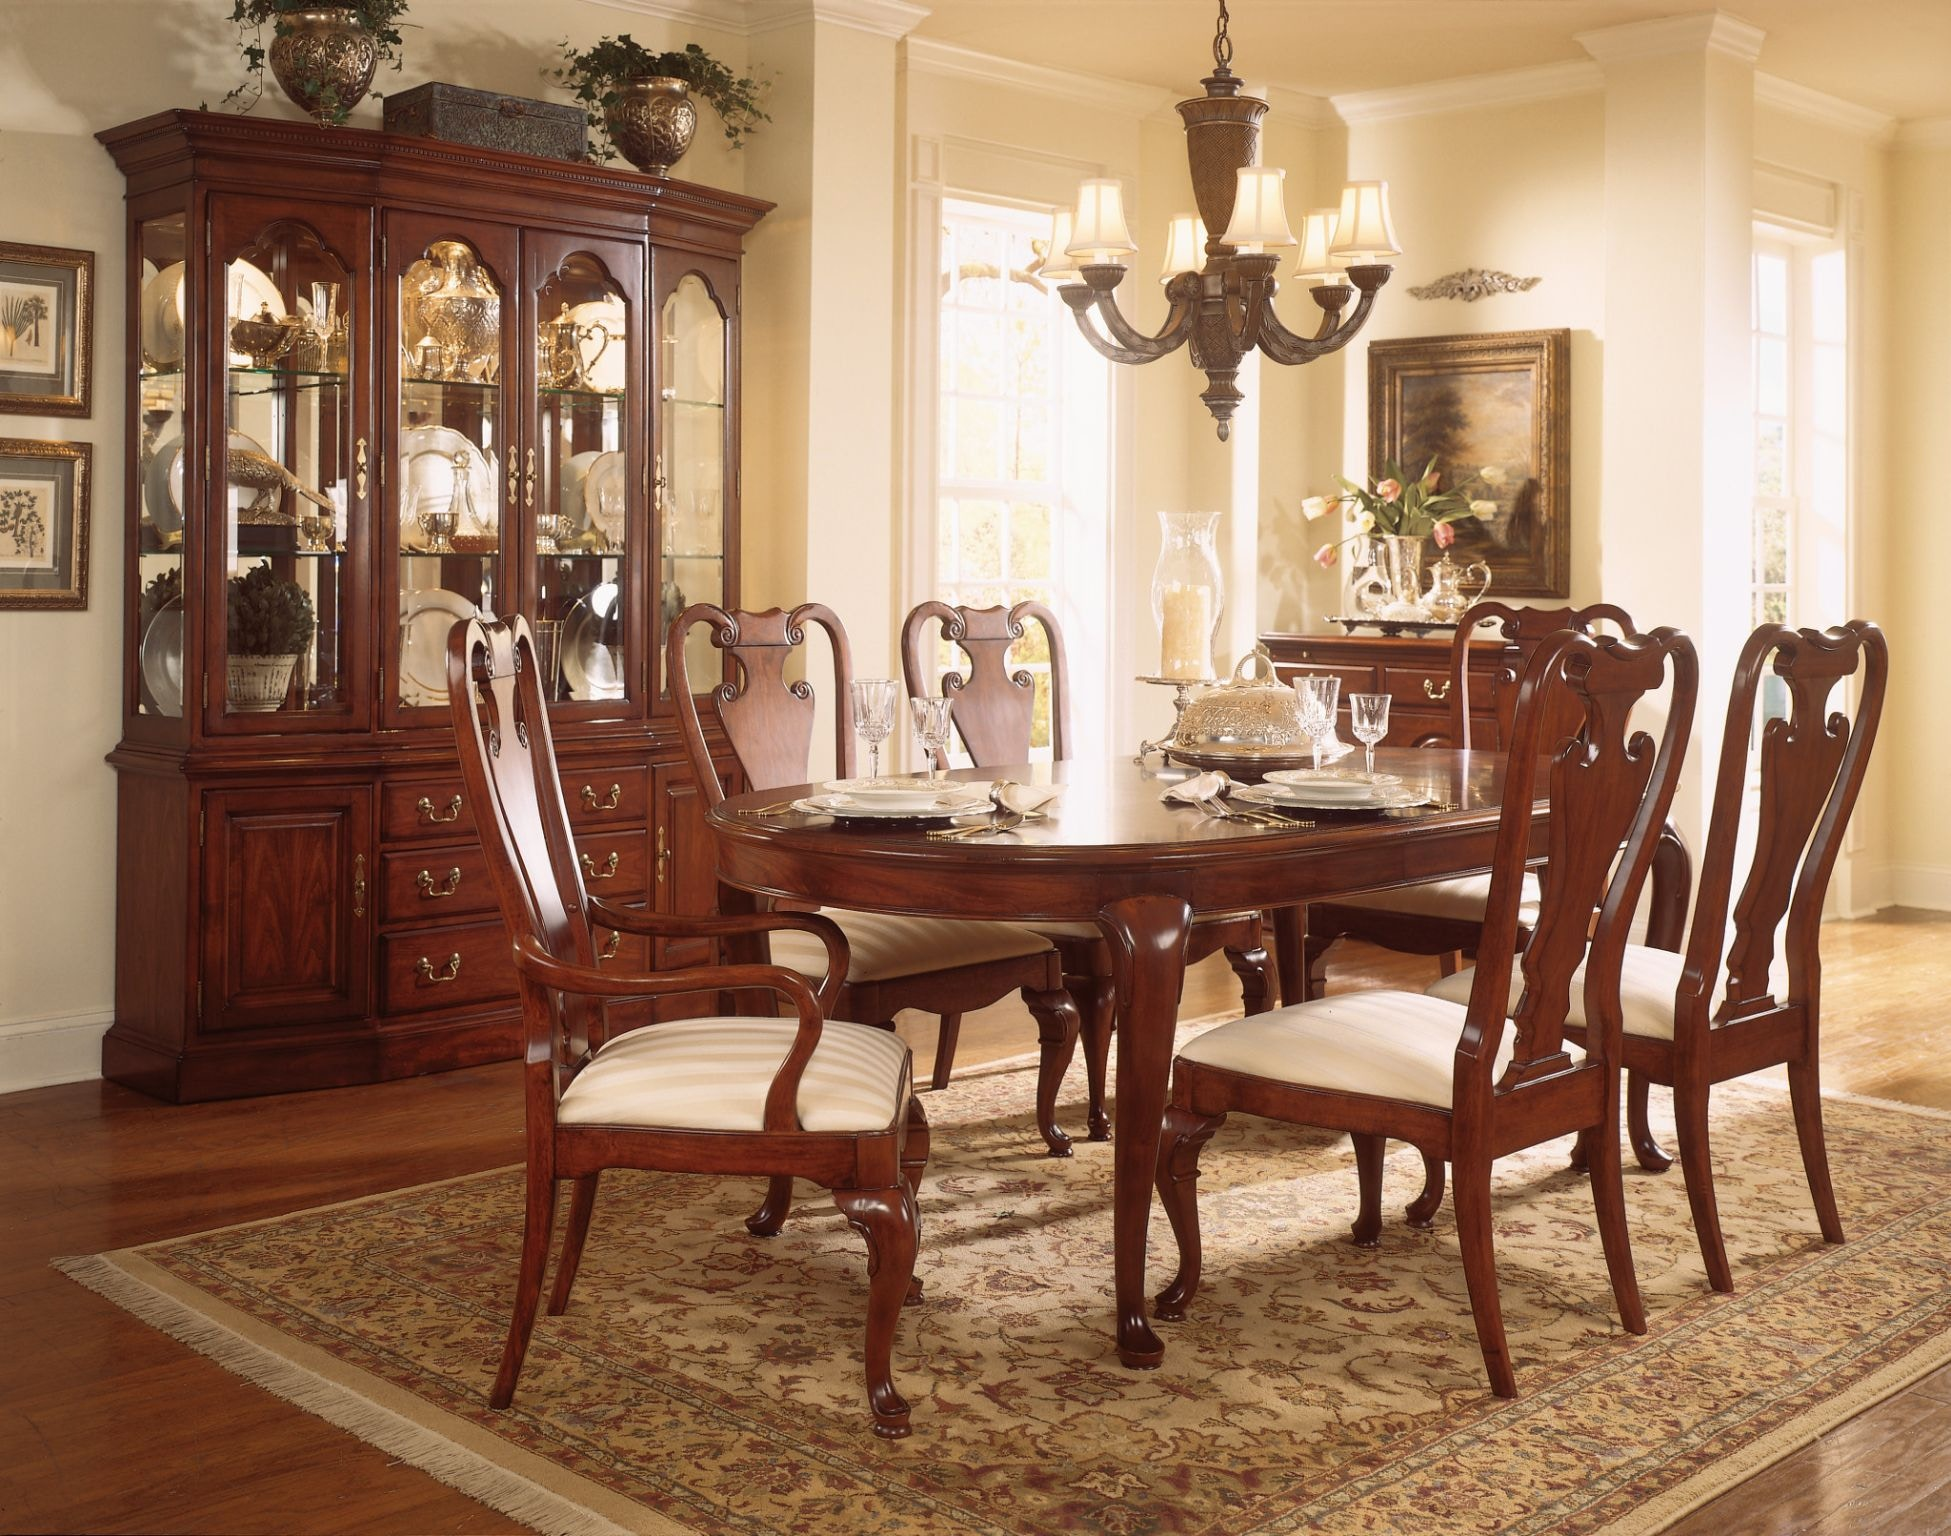 Charmant American Drew Oval Dining Table AMD792760 From Walter E. Smithe Furniture +  Design